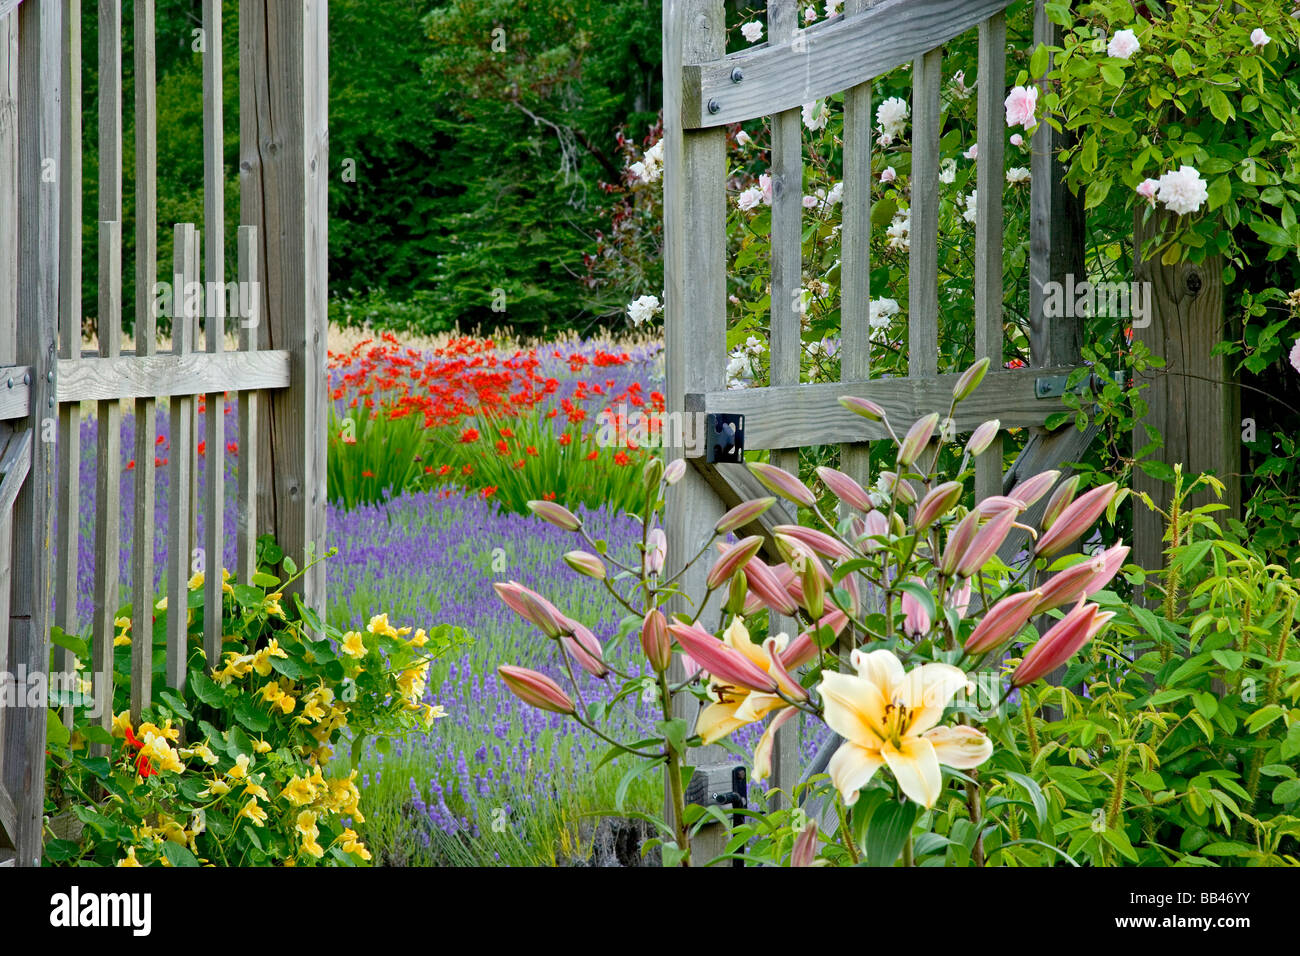 USA, Washington, Bainbridge Island. Garden Gate Opens Onto Variety Of  Flowers And Plants.